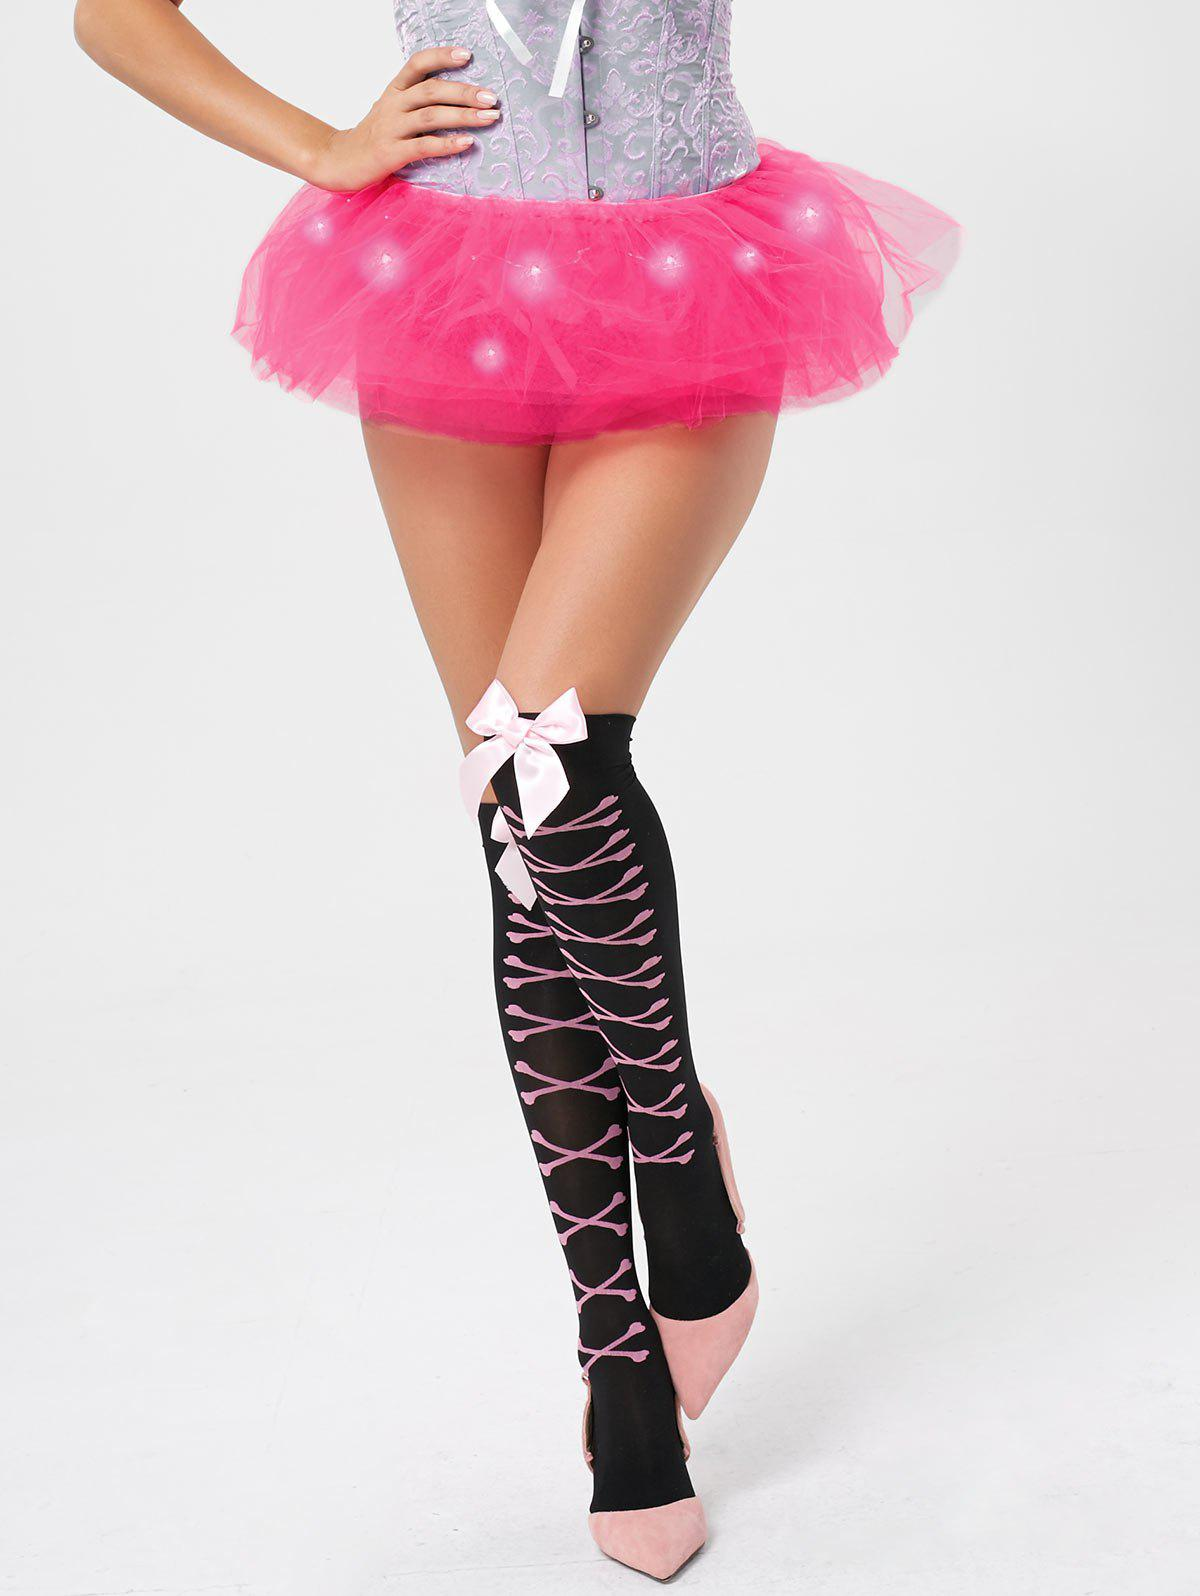 Tier Mesh Light Up Ballet Cosplay Skirt - DEEP PINK ONE SIZE